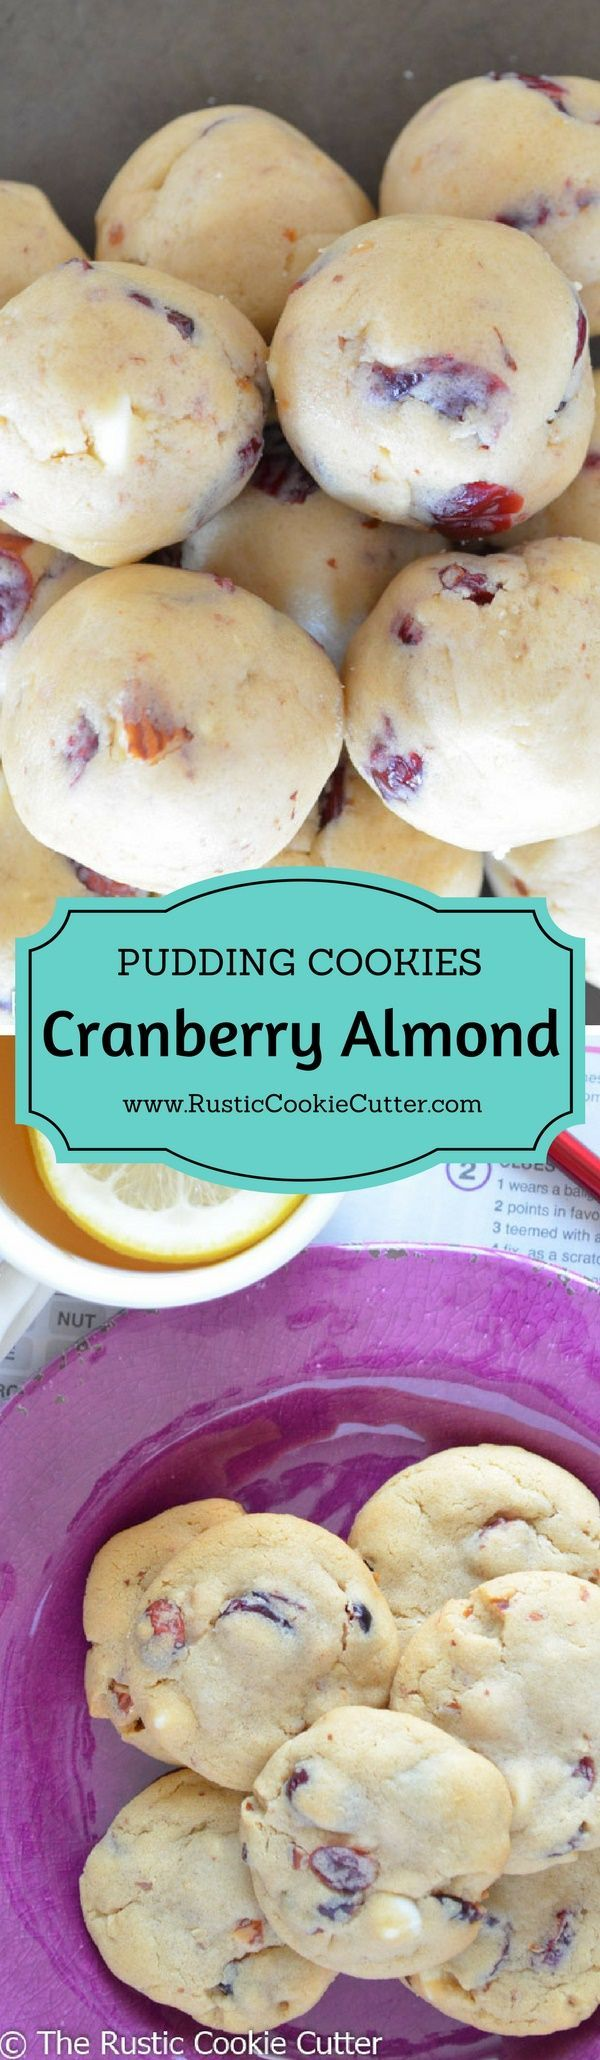 Super Soft & Chewy White Chocolate Pudding Cookies - White Chocolate Almond Cranberry Pudding Cookies